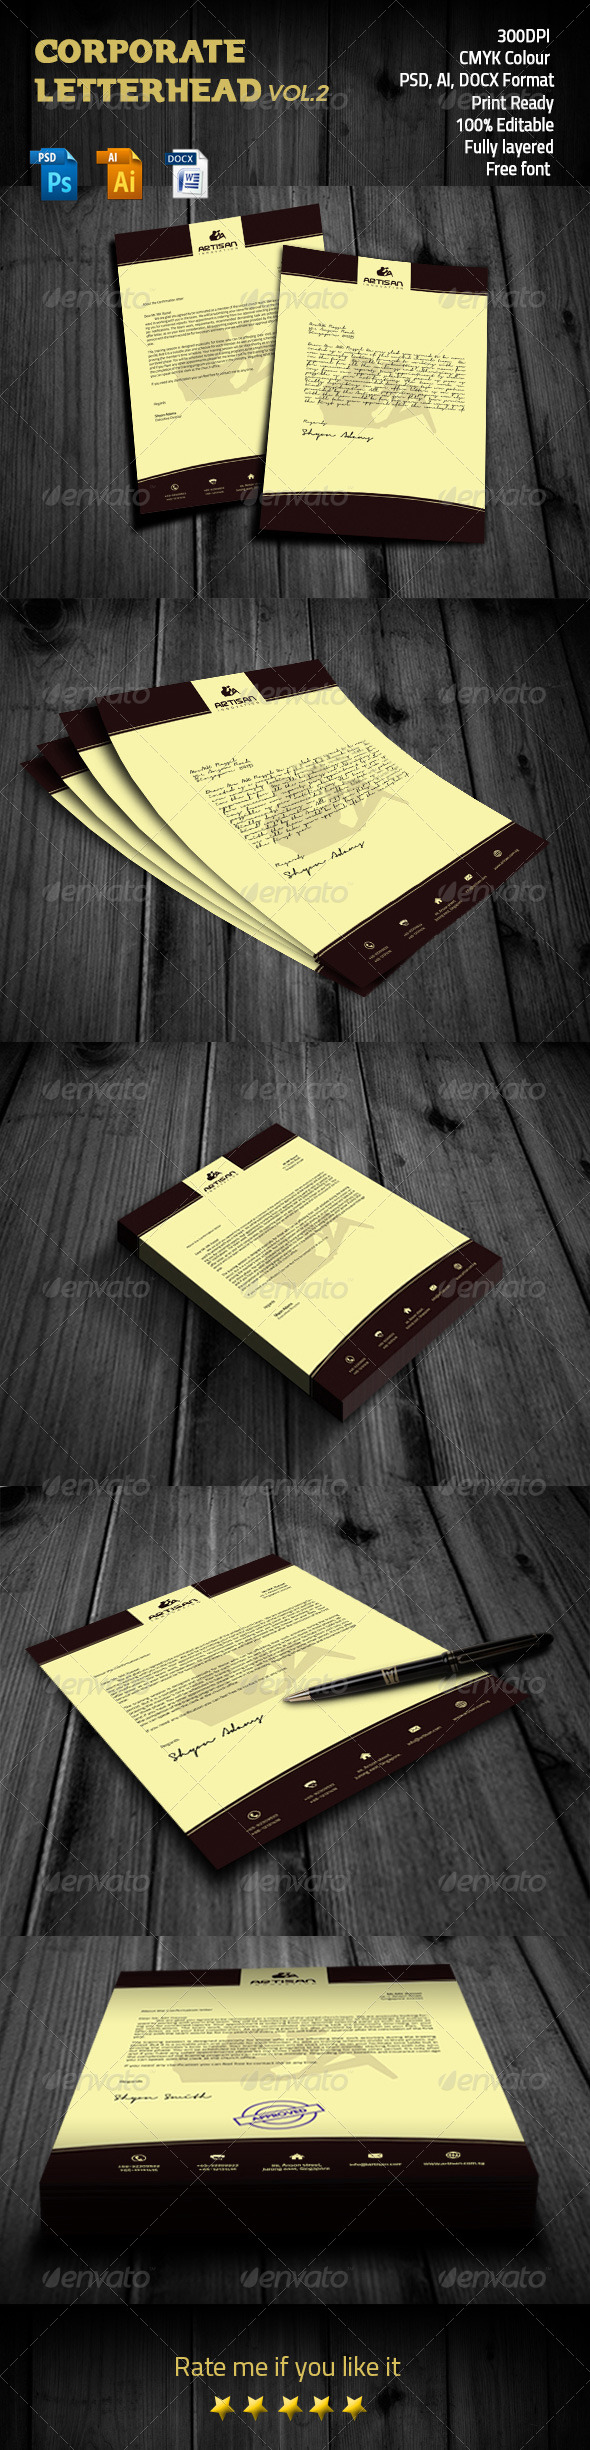 GraphicRiver Corporate letterhead Vol.2 8548931